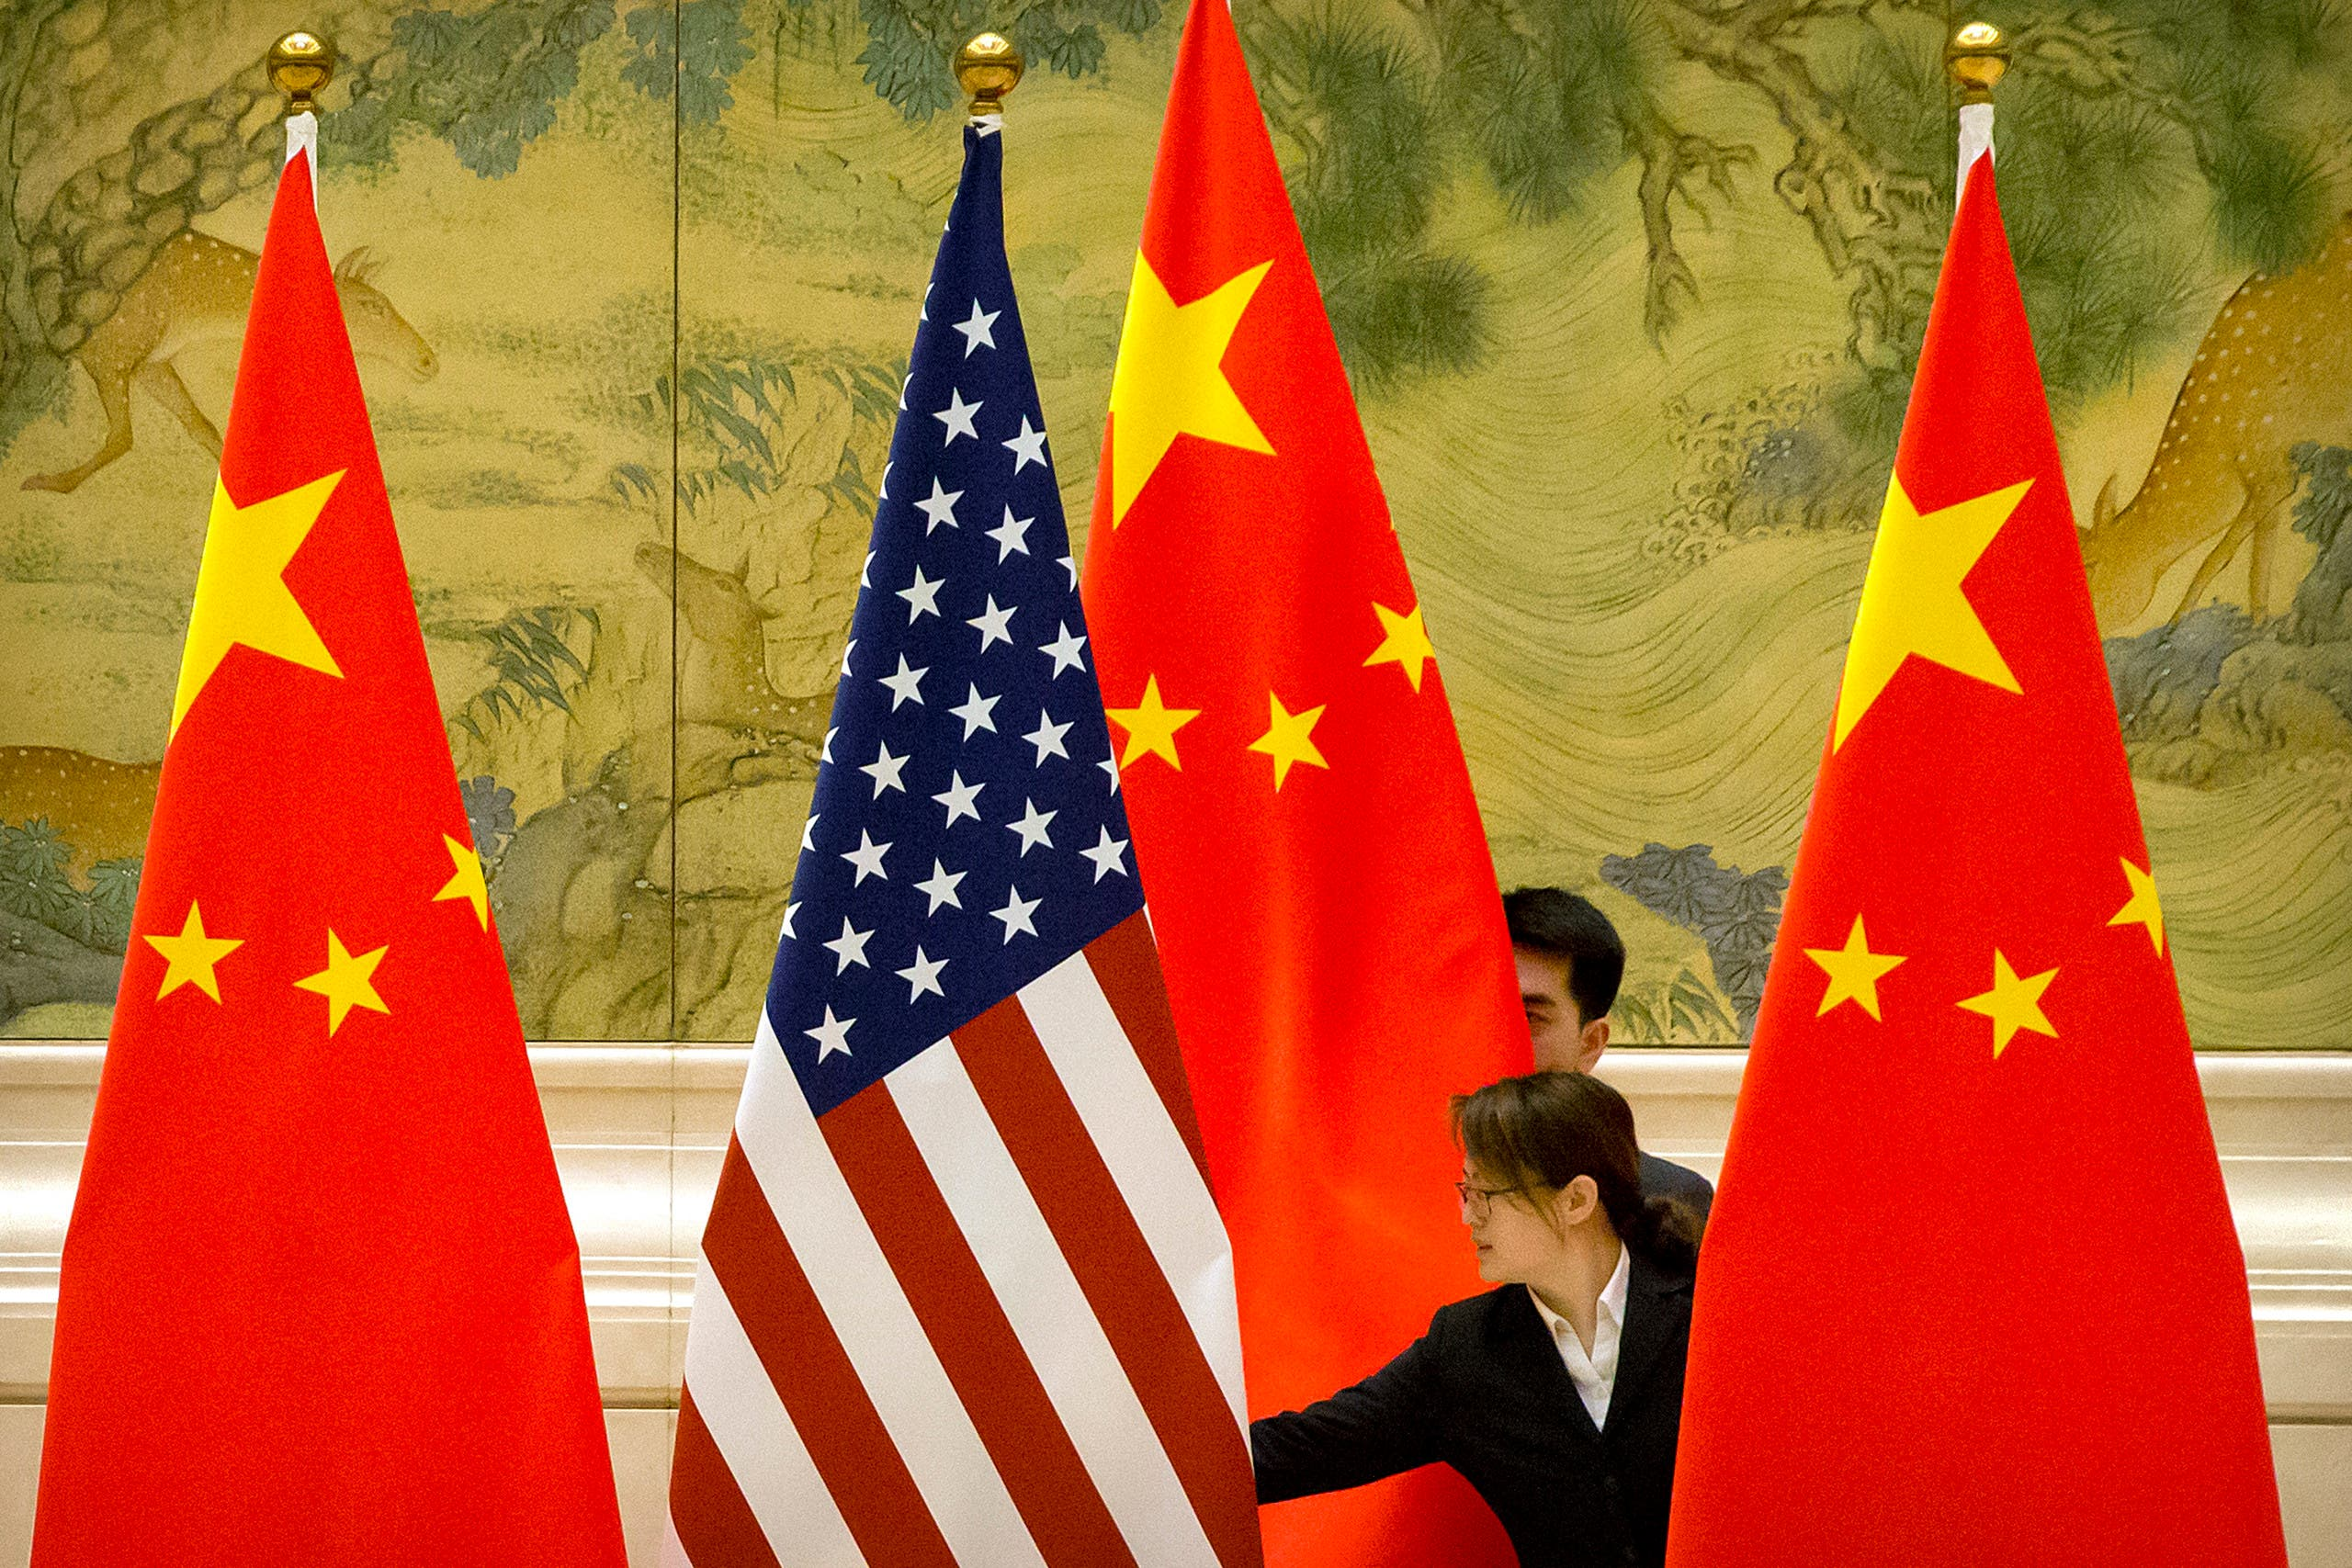 Chinese staff adjust US and Chinese flags before the opening session of trade negotiations between US and Chinese trade representatives at the Diaoyutai State Guesthouse in Beijing on February 14, 2019. (AFP)